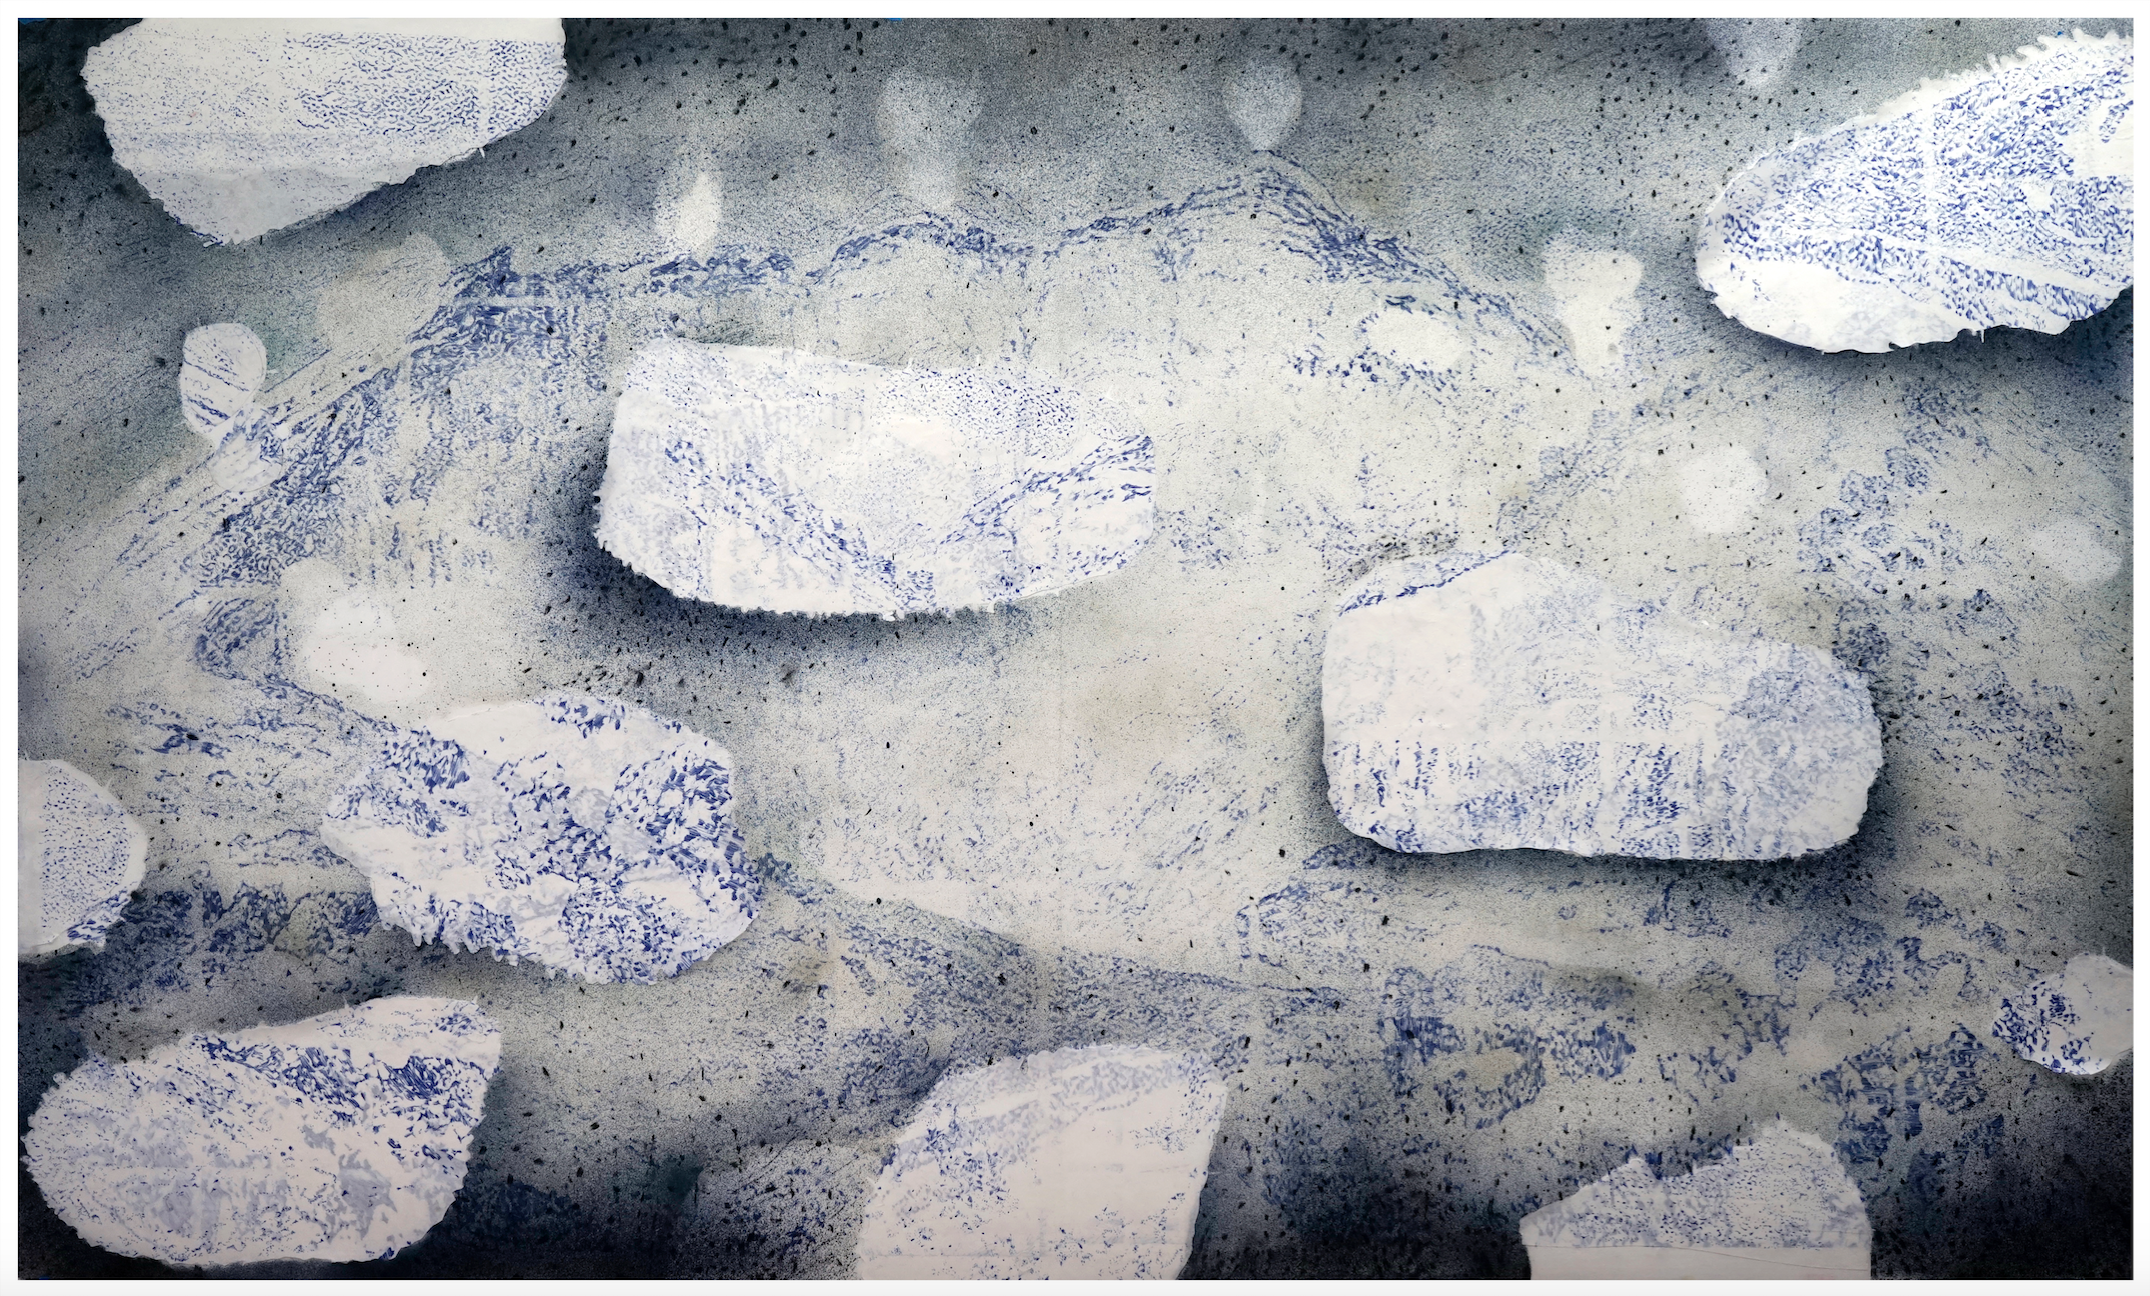 Crater_scape#2' - 2019 - pencil, ink, acrylic ,silver leaf, Japanese paper - 110 x 194 cm